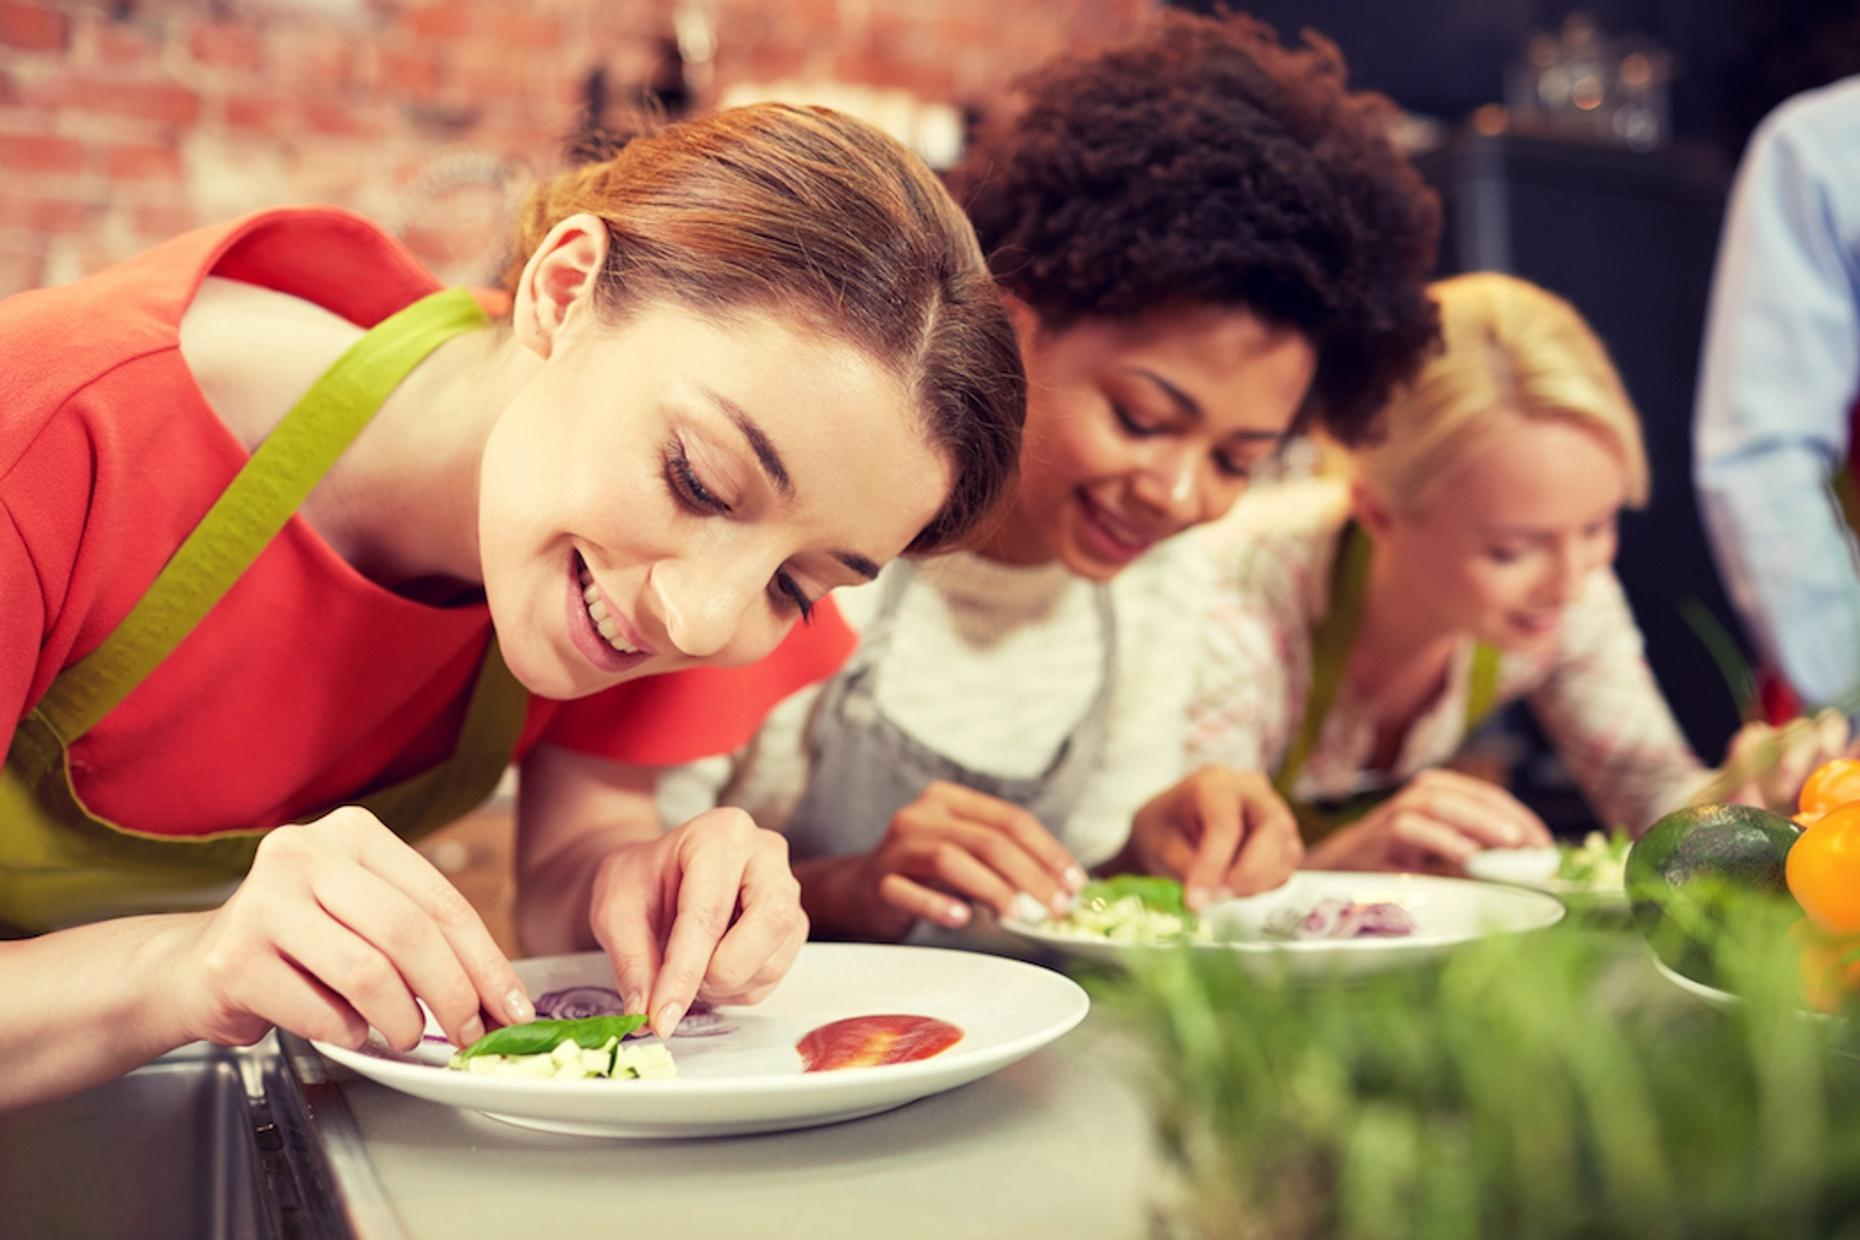 Studio City Healthy Lifestyle Cooking Class